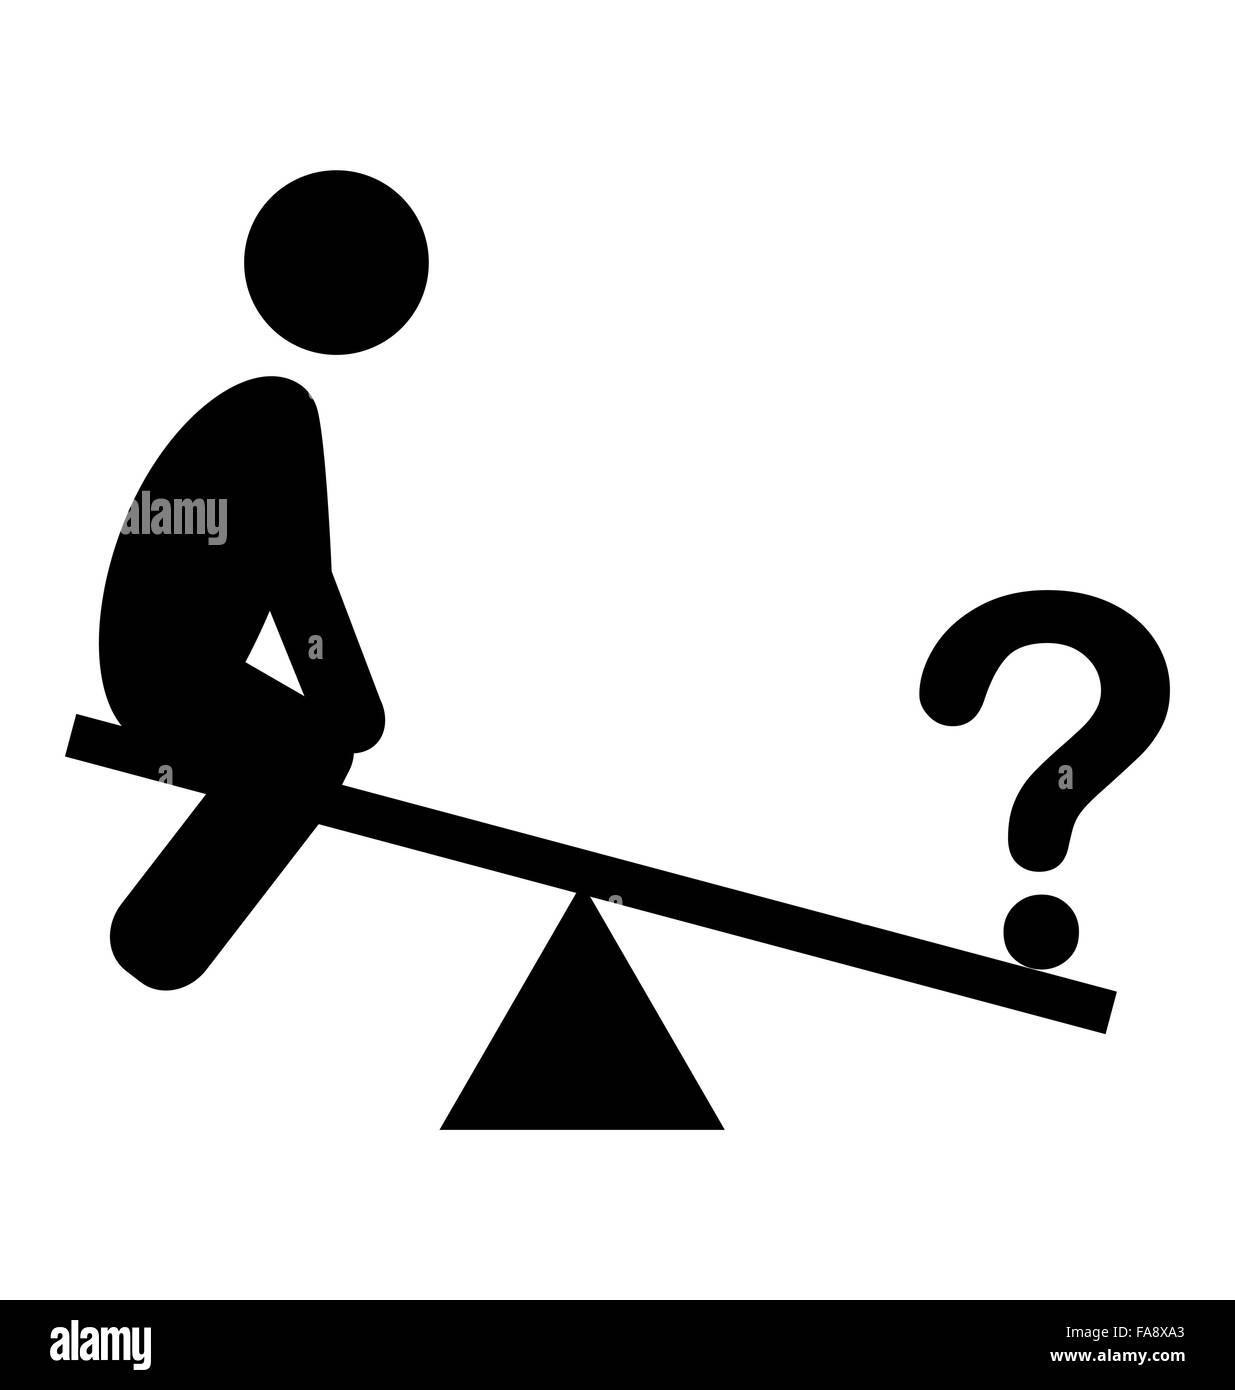 Confusion Man on Swing People with Question Mark Flat Icons Pict - Stock Vector